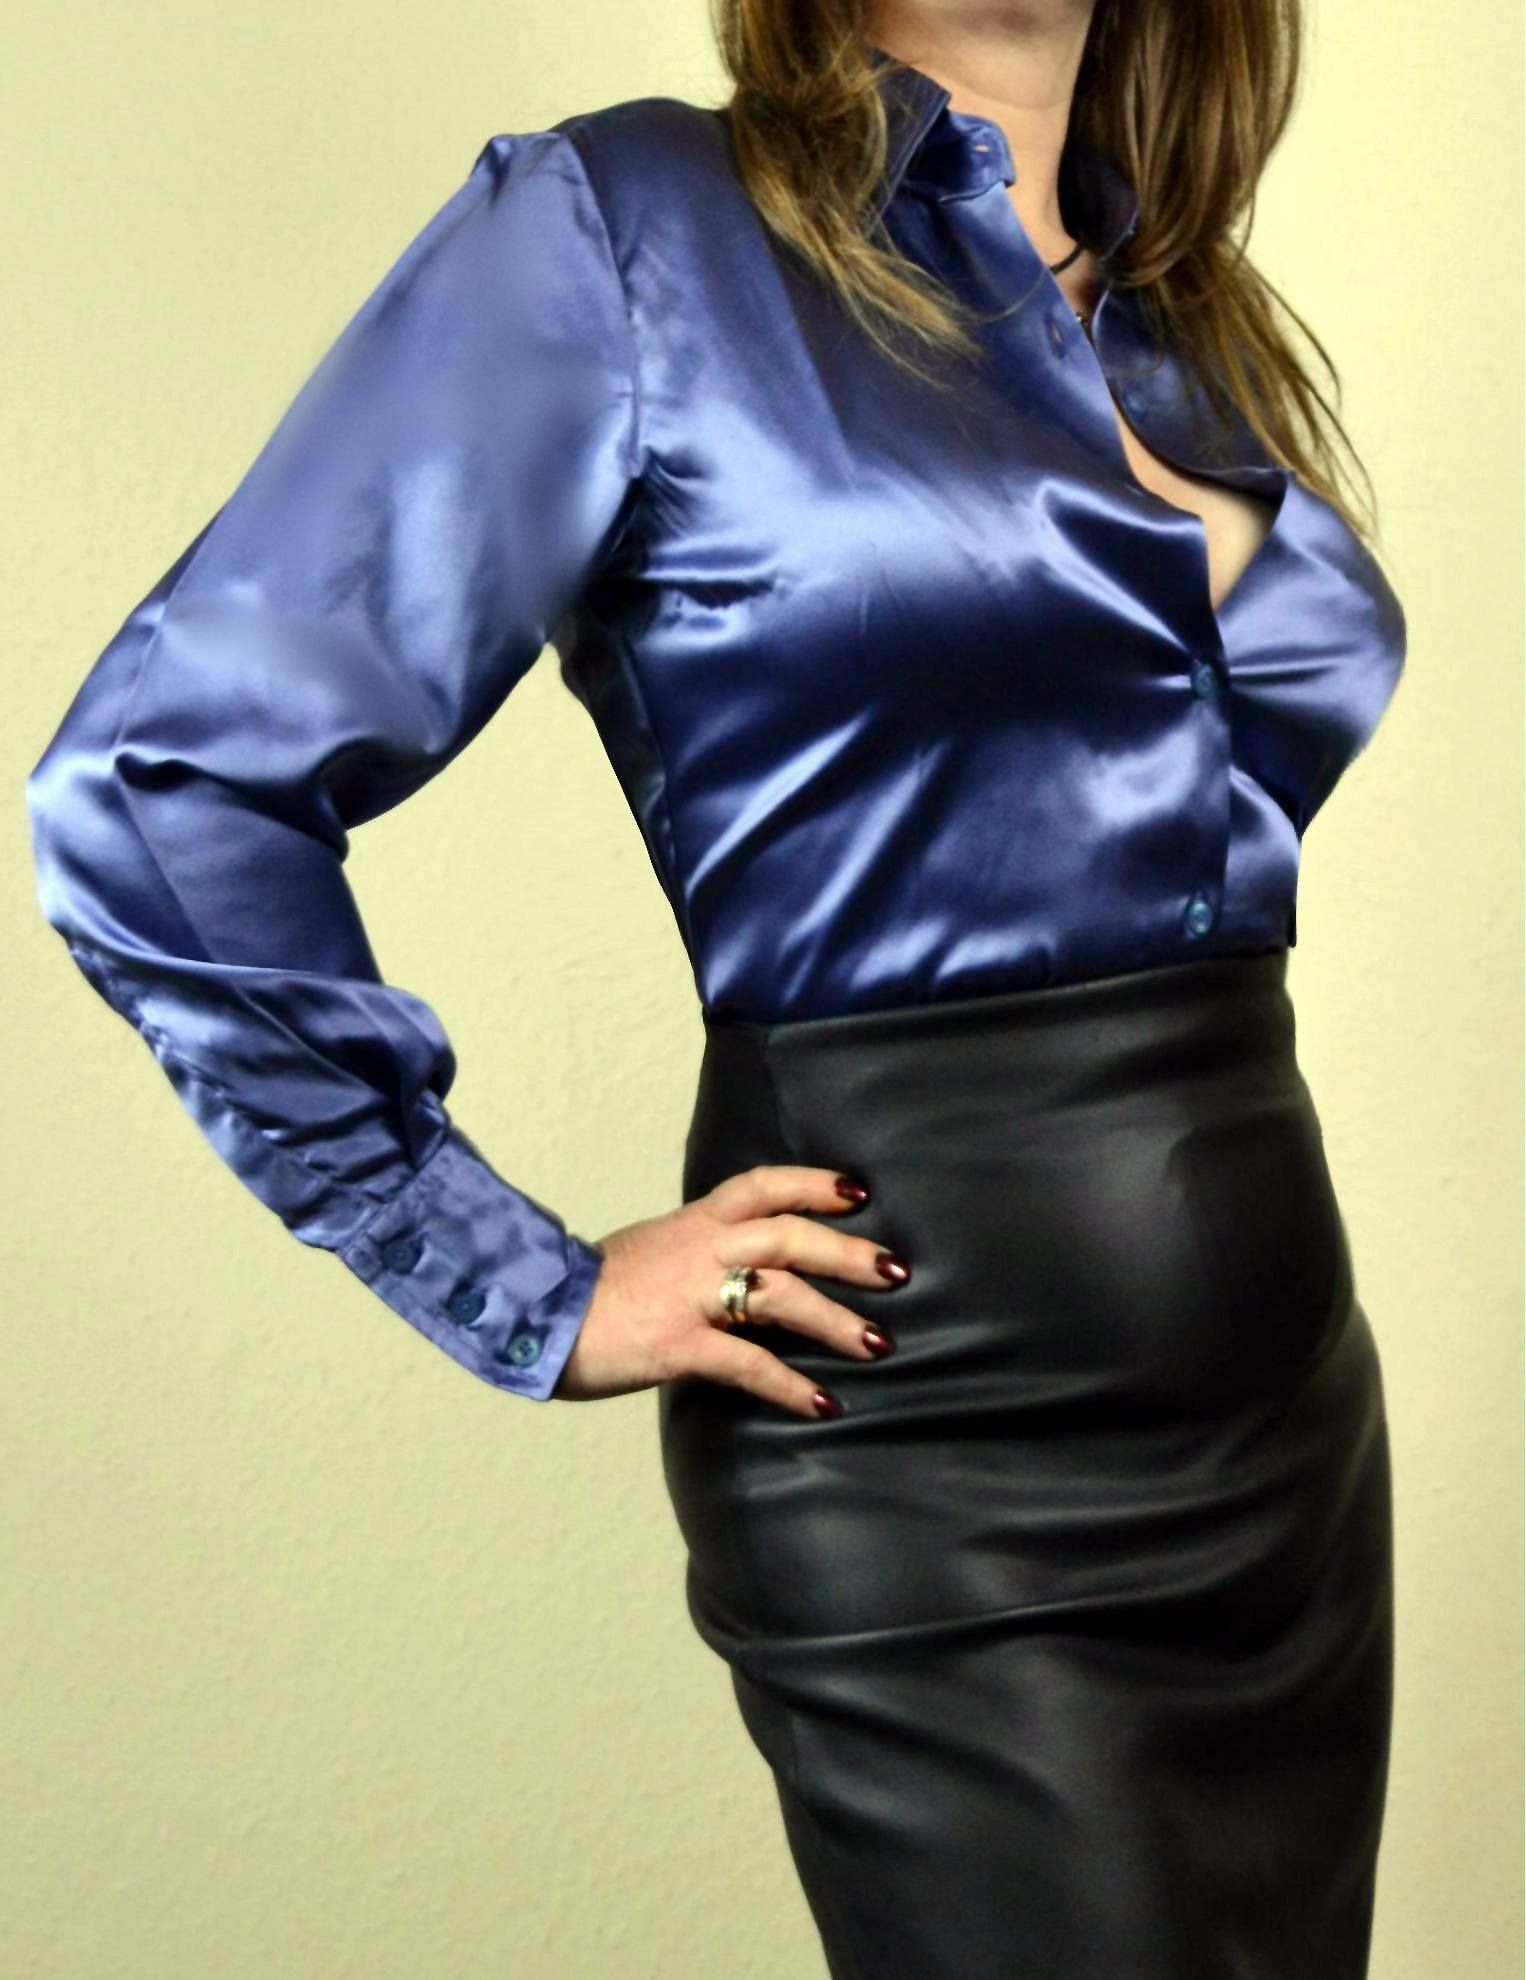 9793232e2f Blue satin blouse and black leather skirt | great looks in 2019 ...